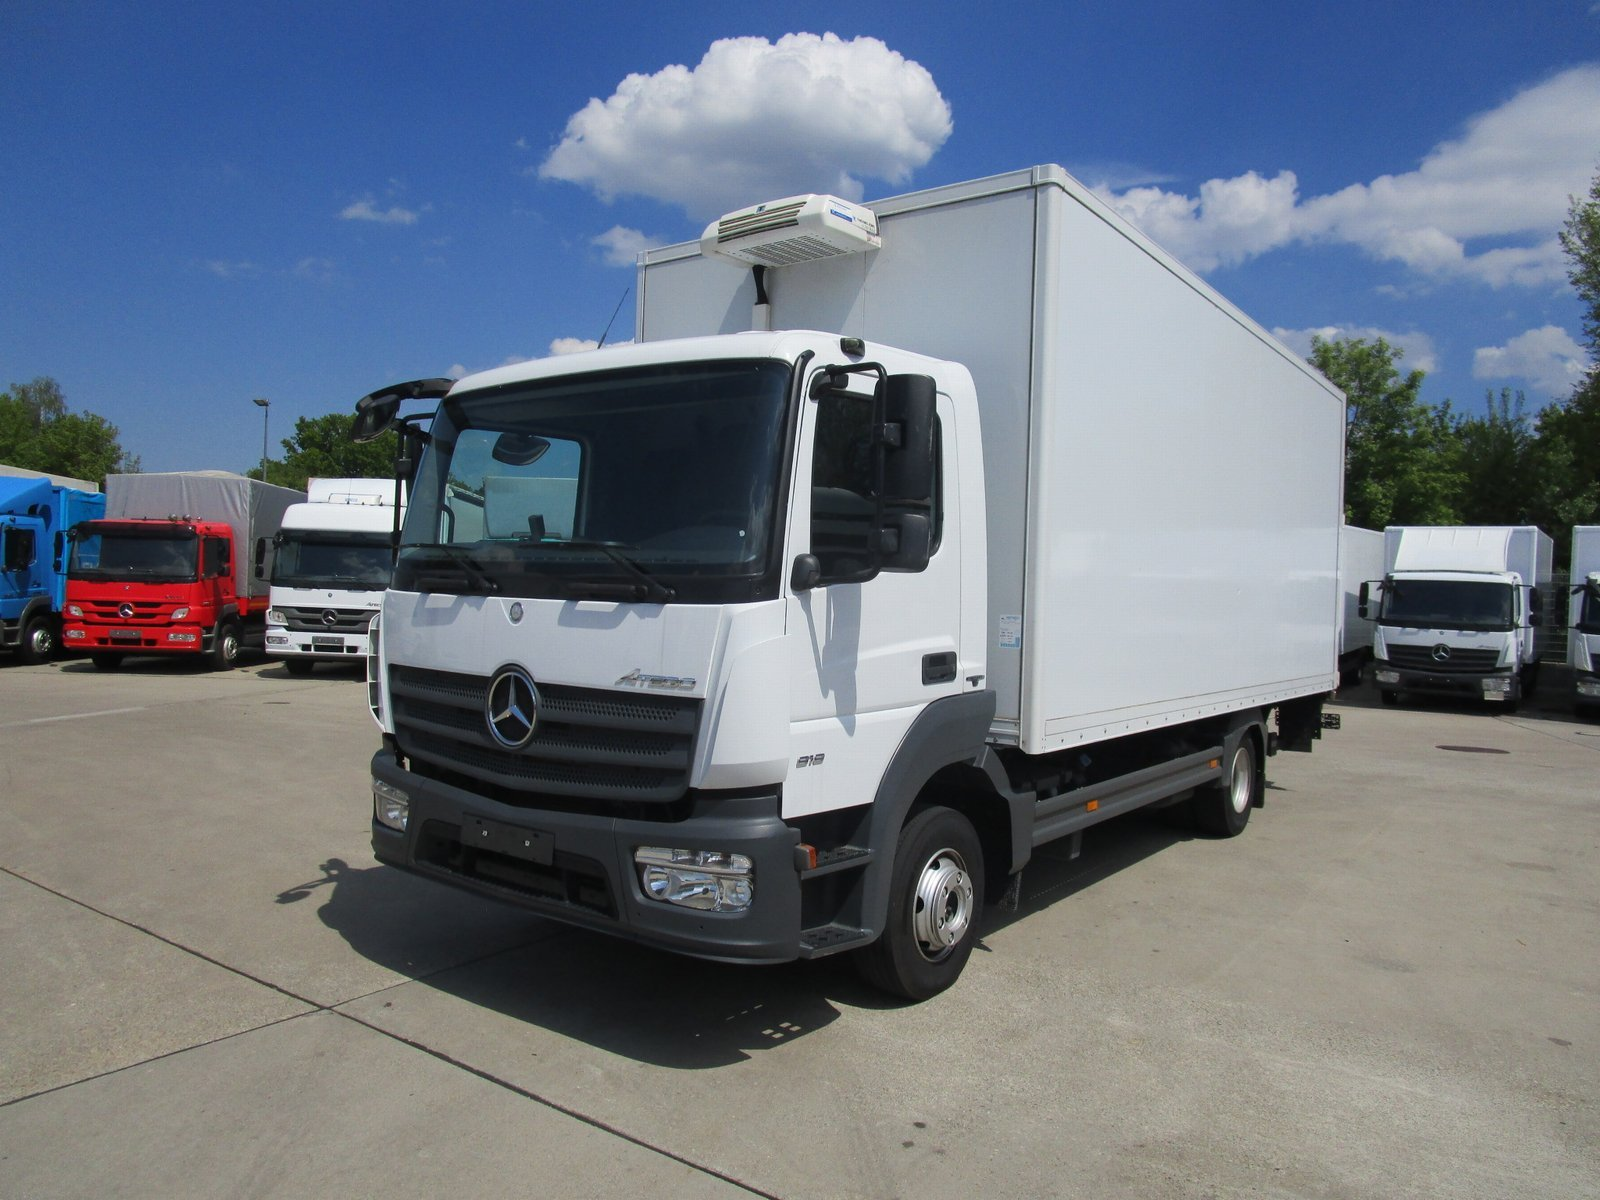 ATEGO IV 818 L Kühlkoffer 6m LBW 1 T*THERMOKING